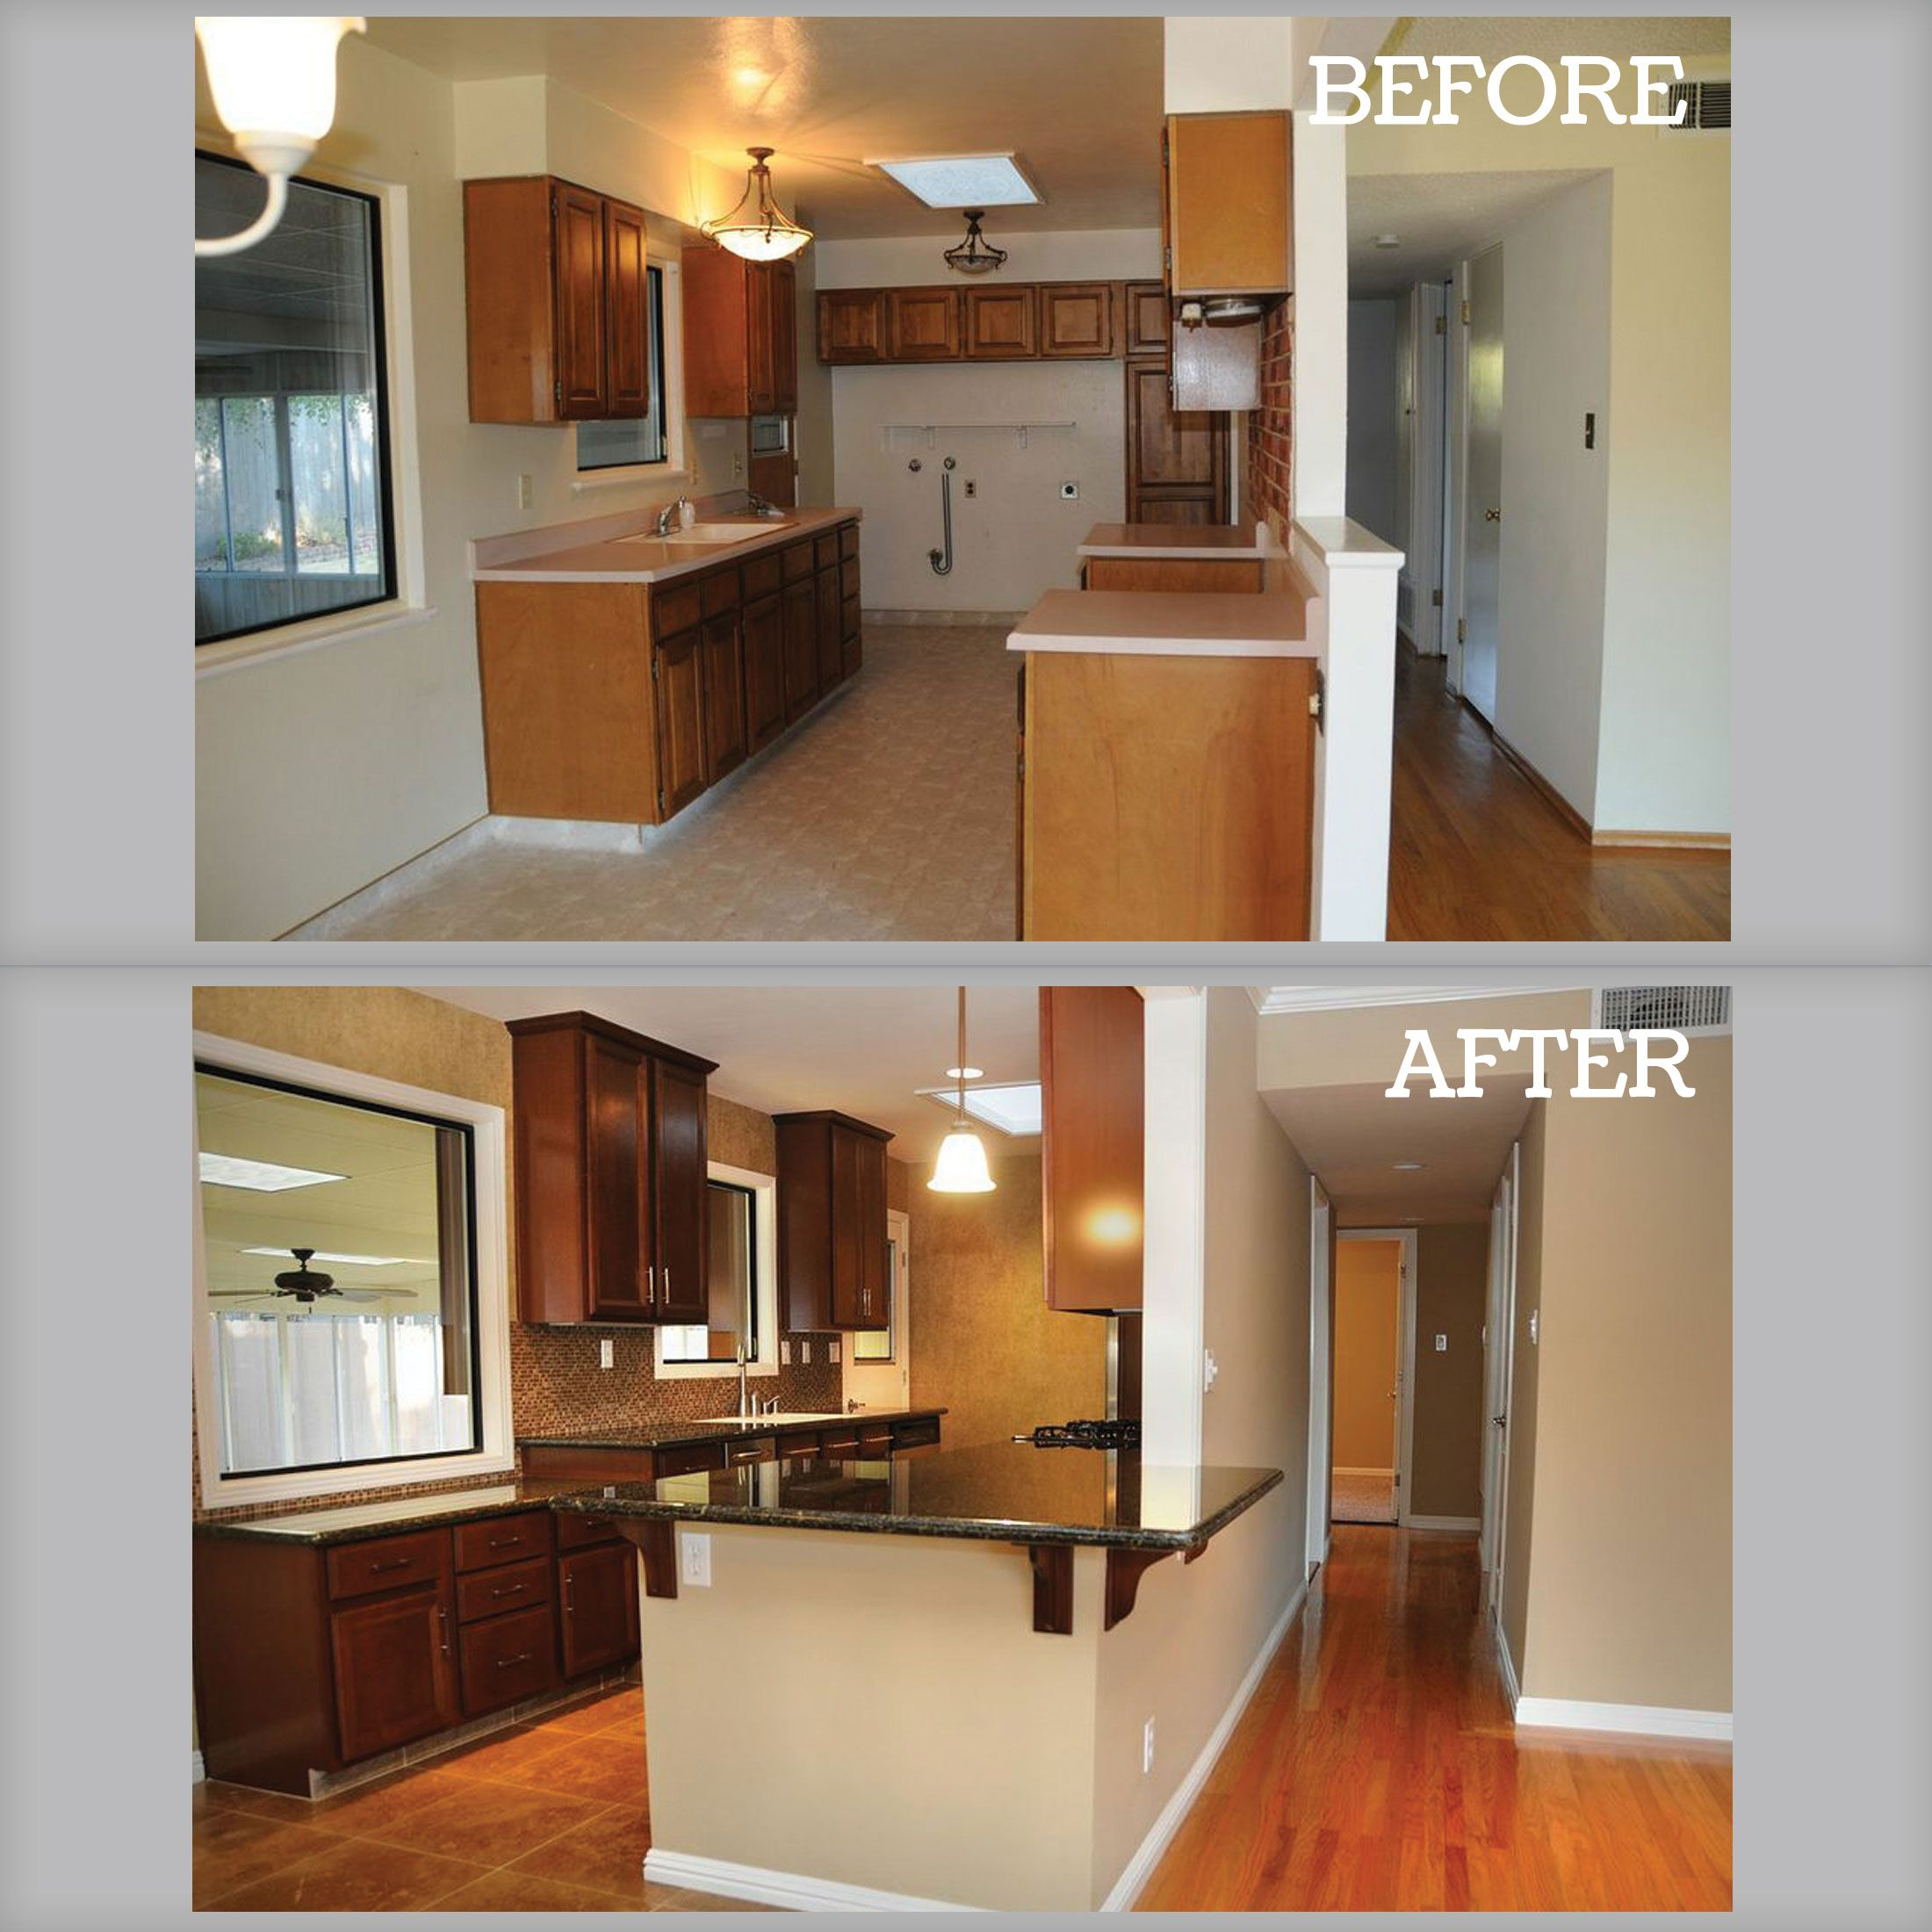 A Before And After Photo Of A Kitchen Remodel Hybrid Homes Did